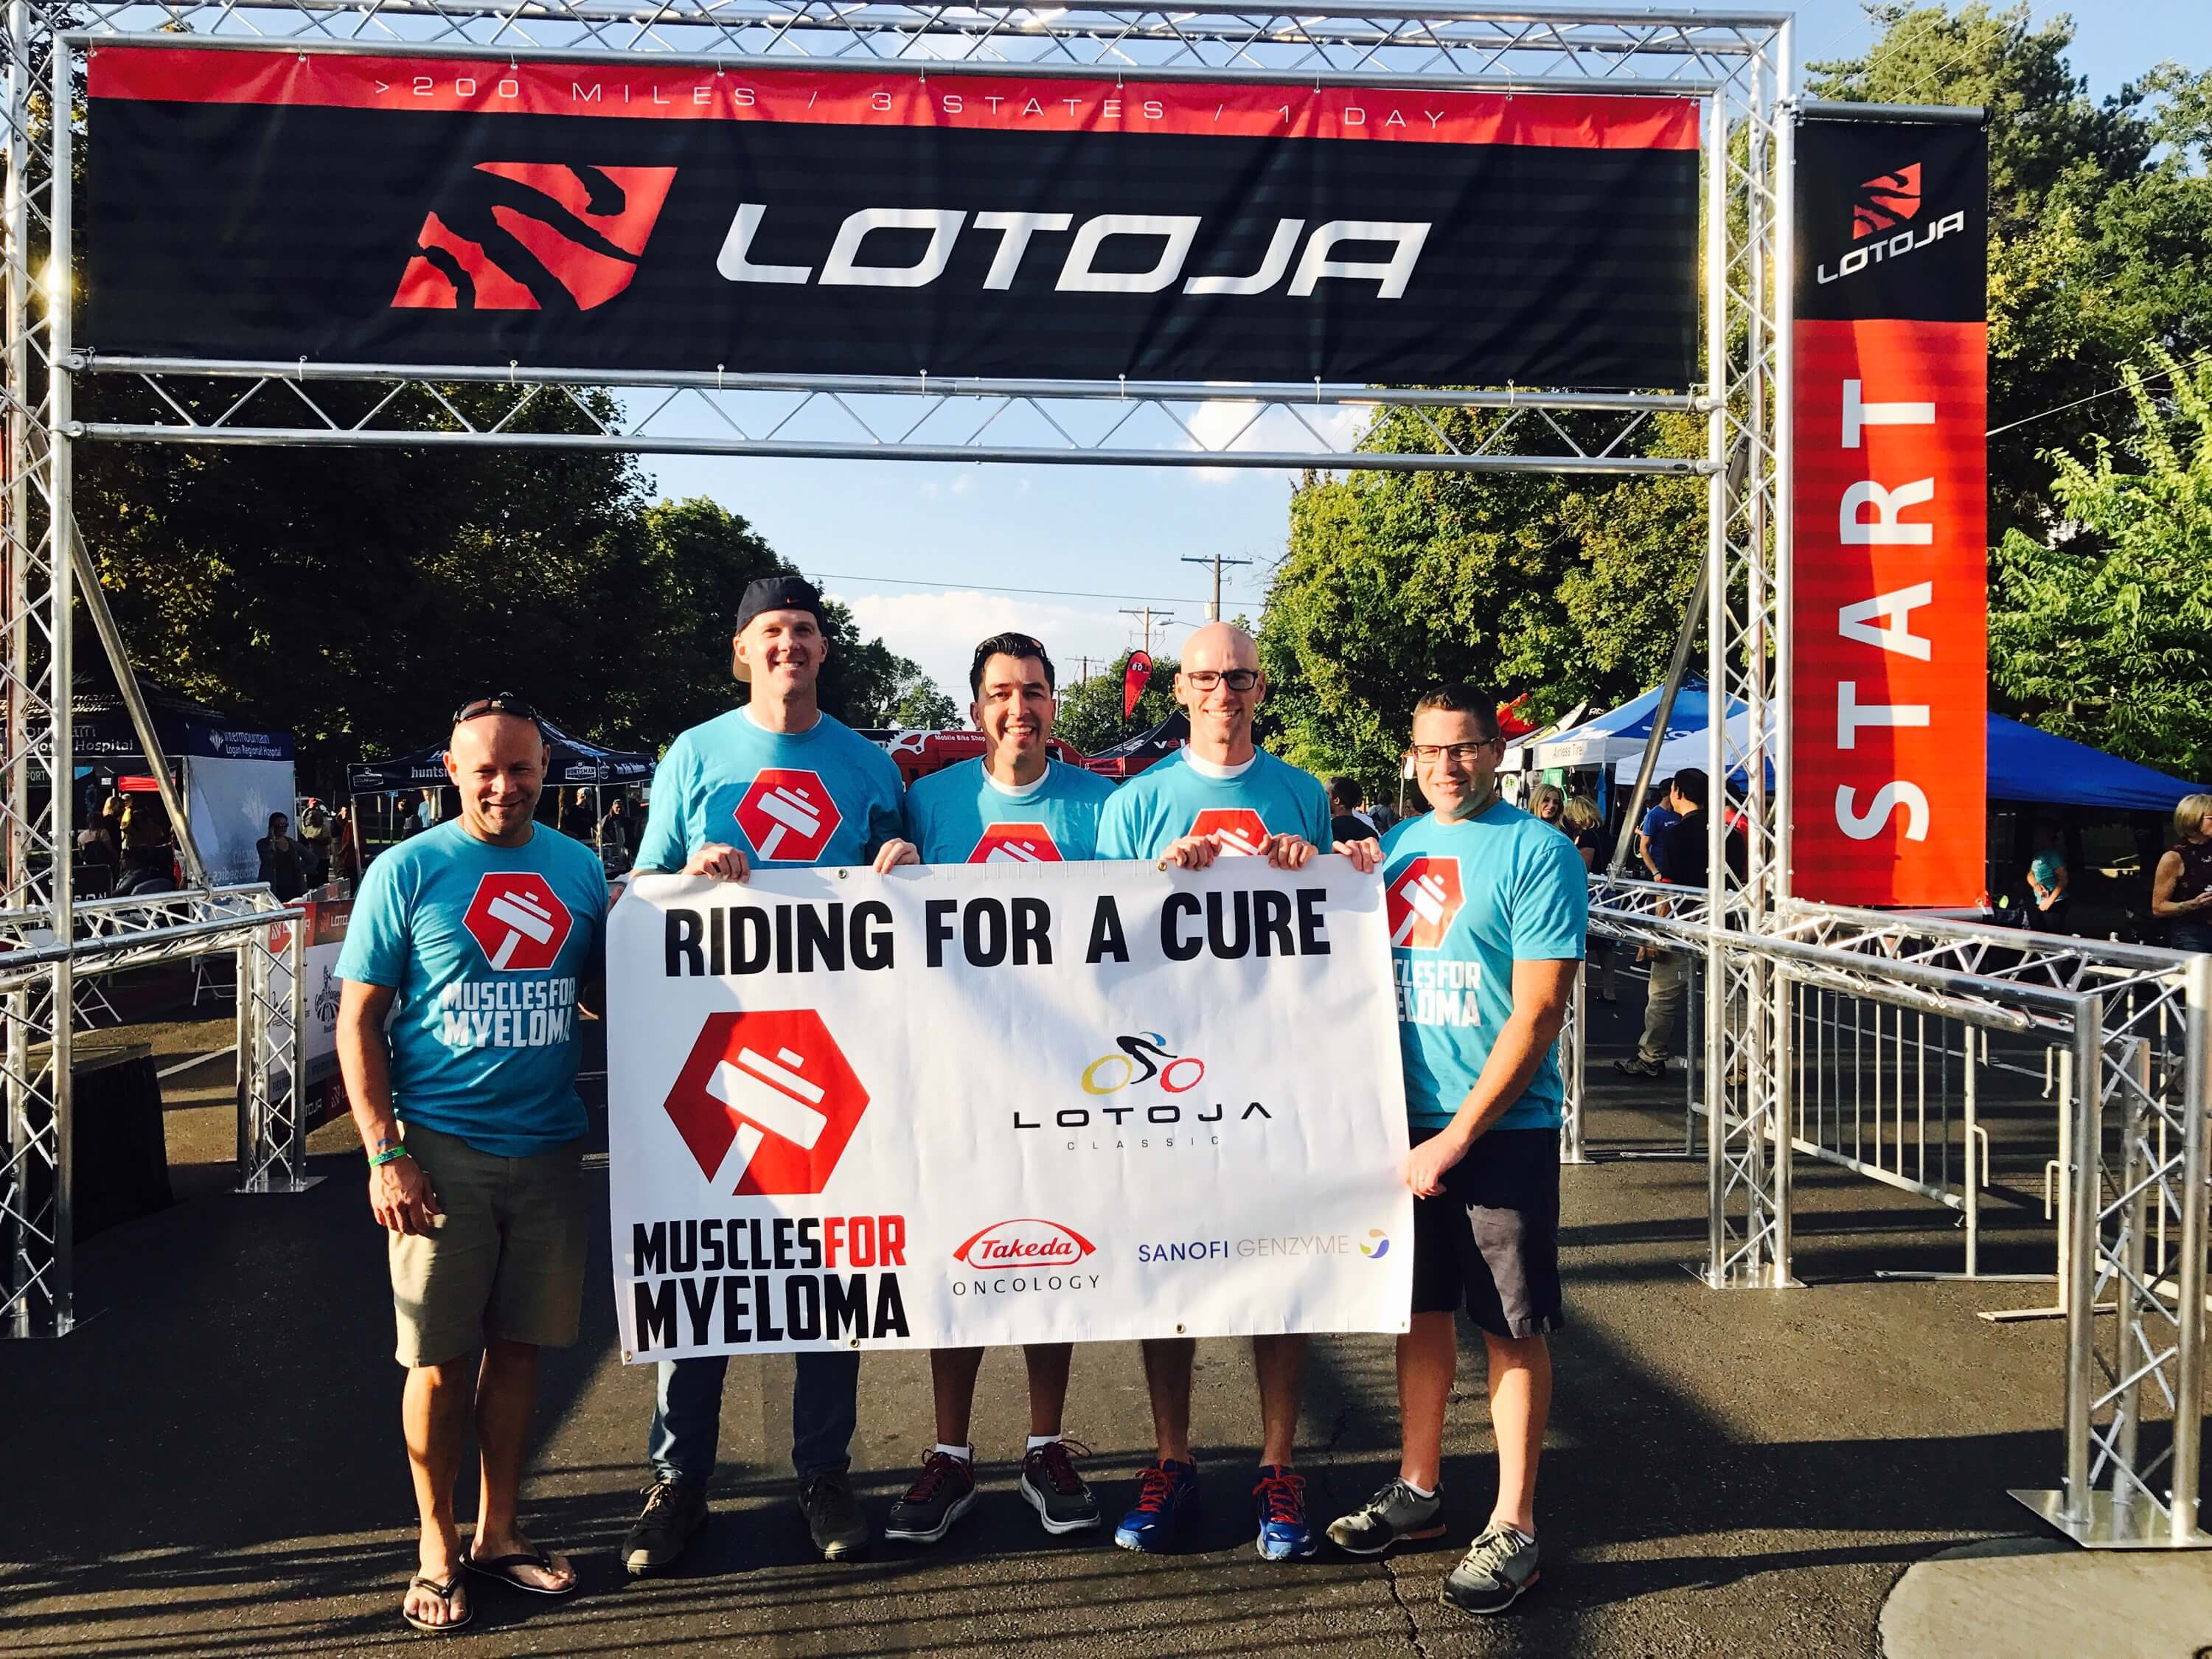 LOTOJA 2017 Richard Hite and the Muscles for Myeloma Team Raise 3000x2250